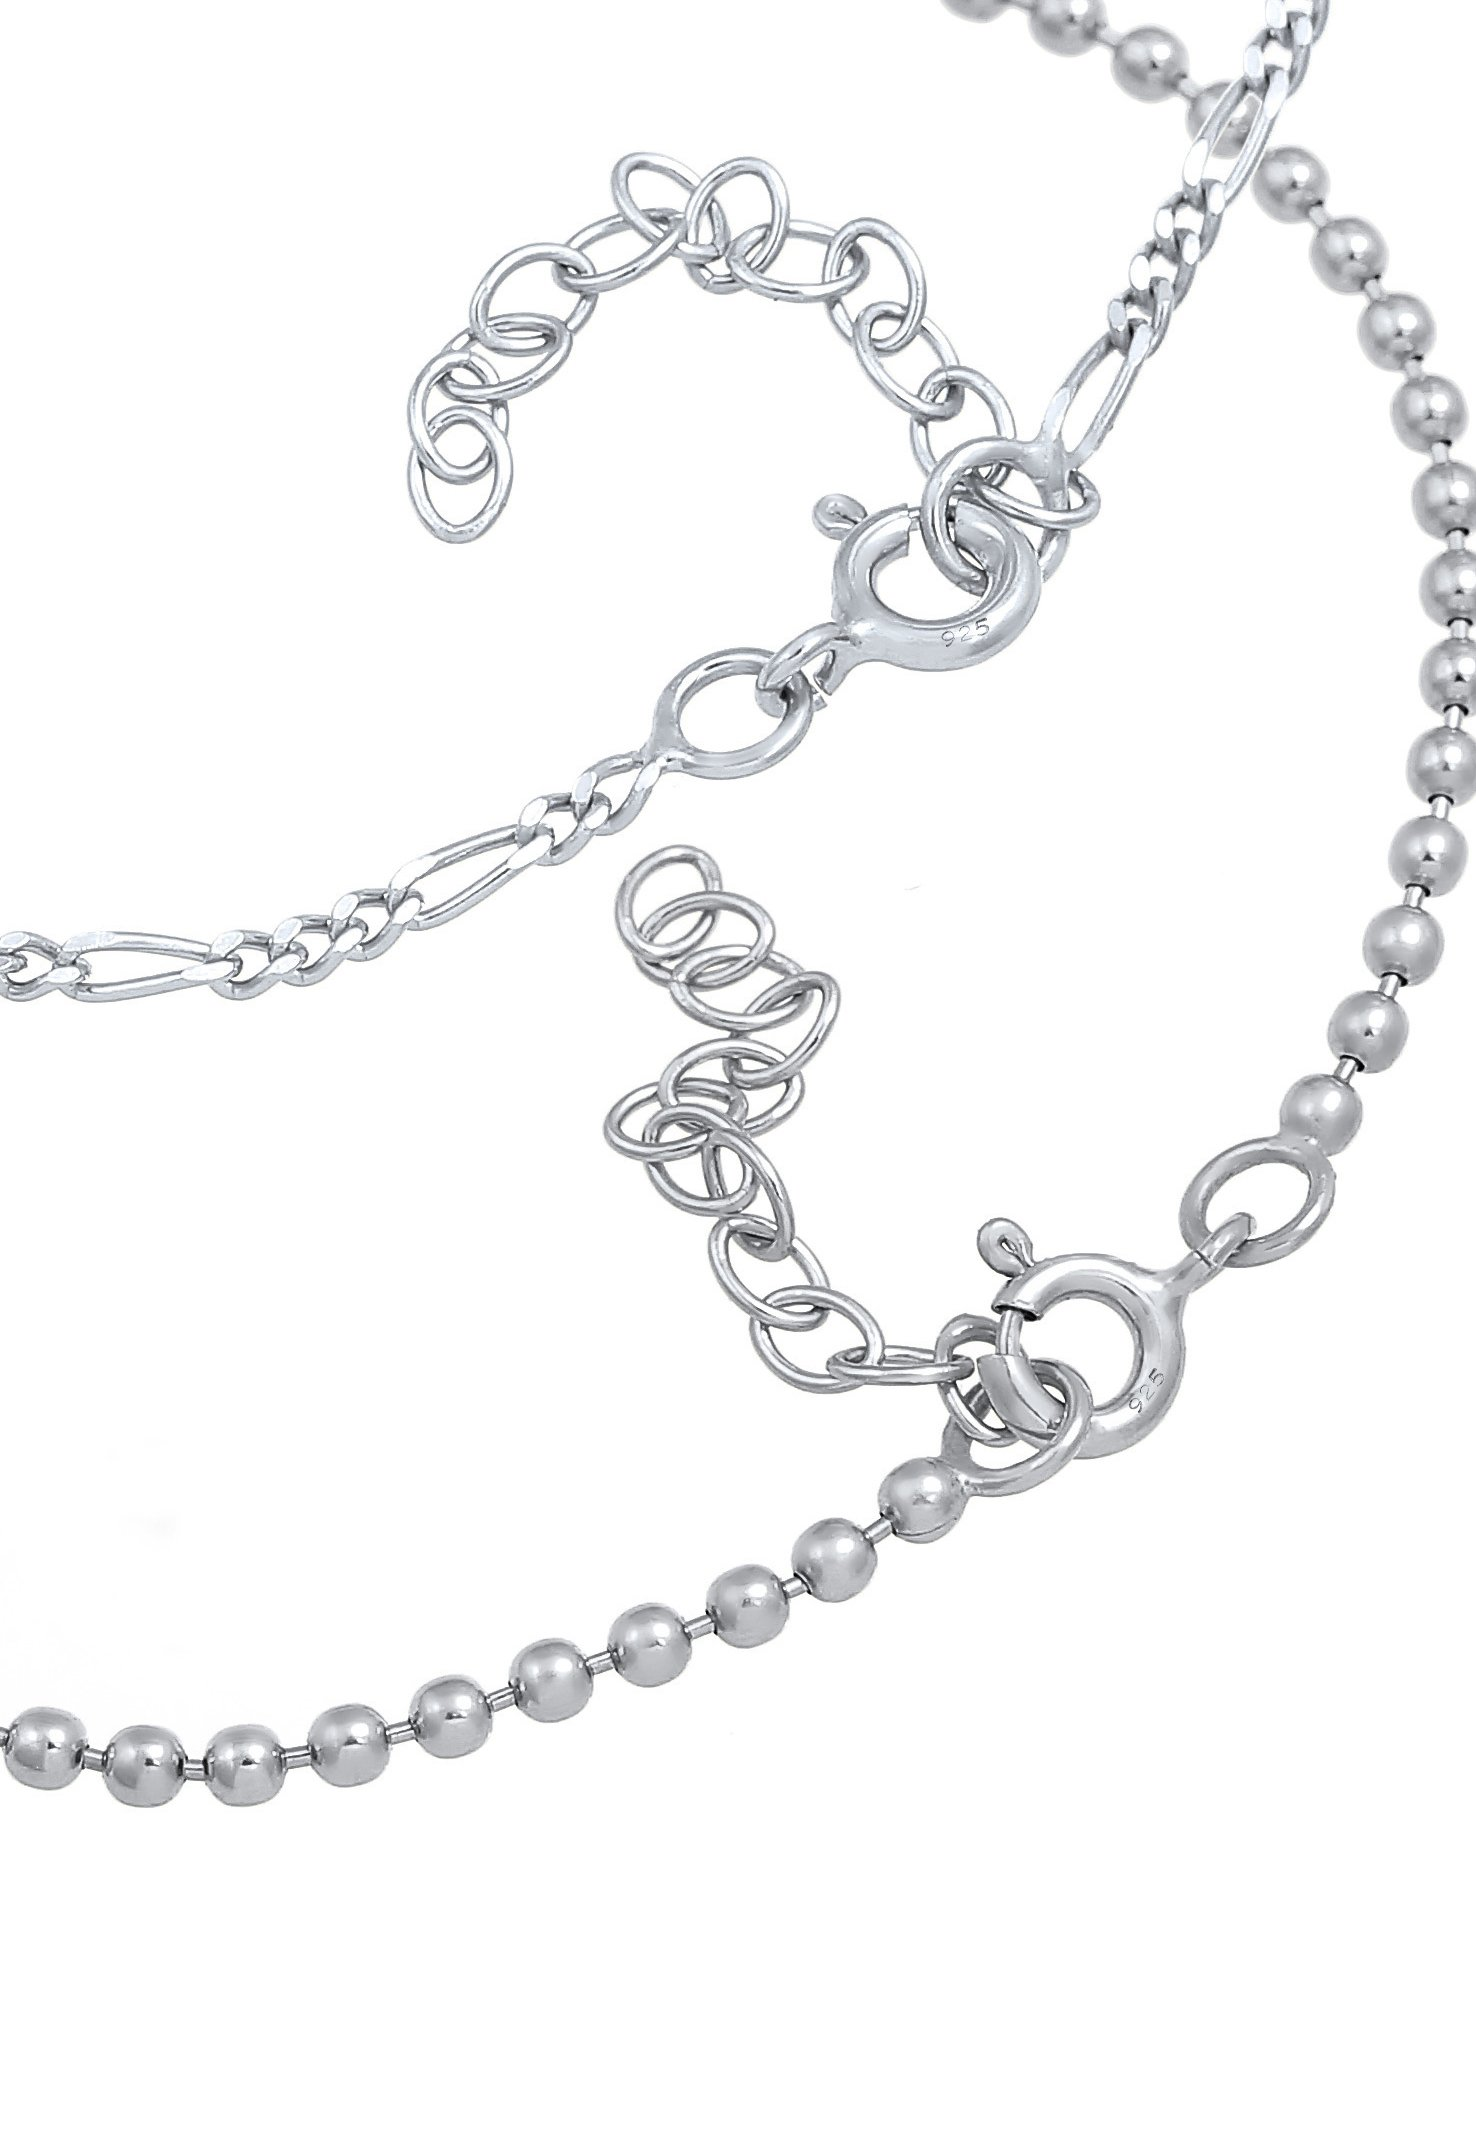 Drop Shipping Popular Accessories Elli SET Bracelet silver-coloured aII1WevyQ xhjkddxGs